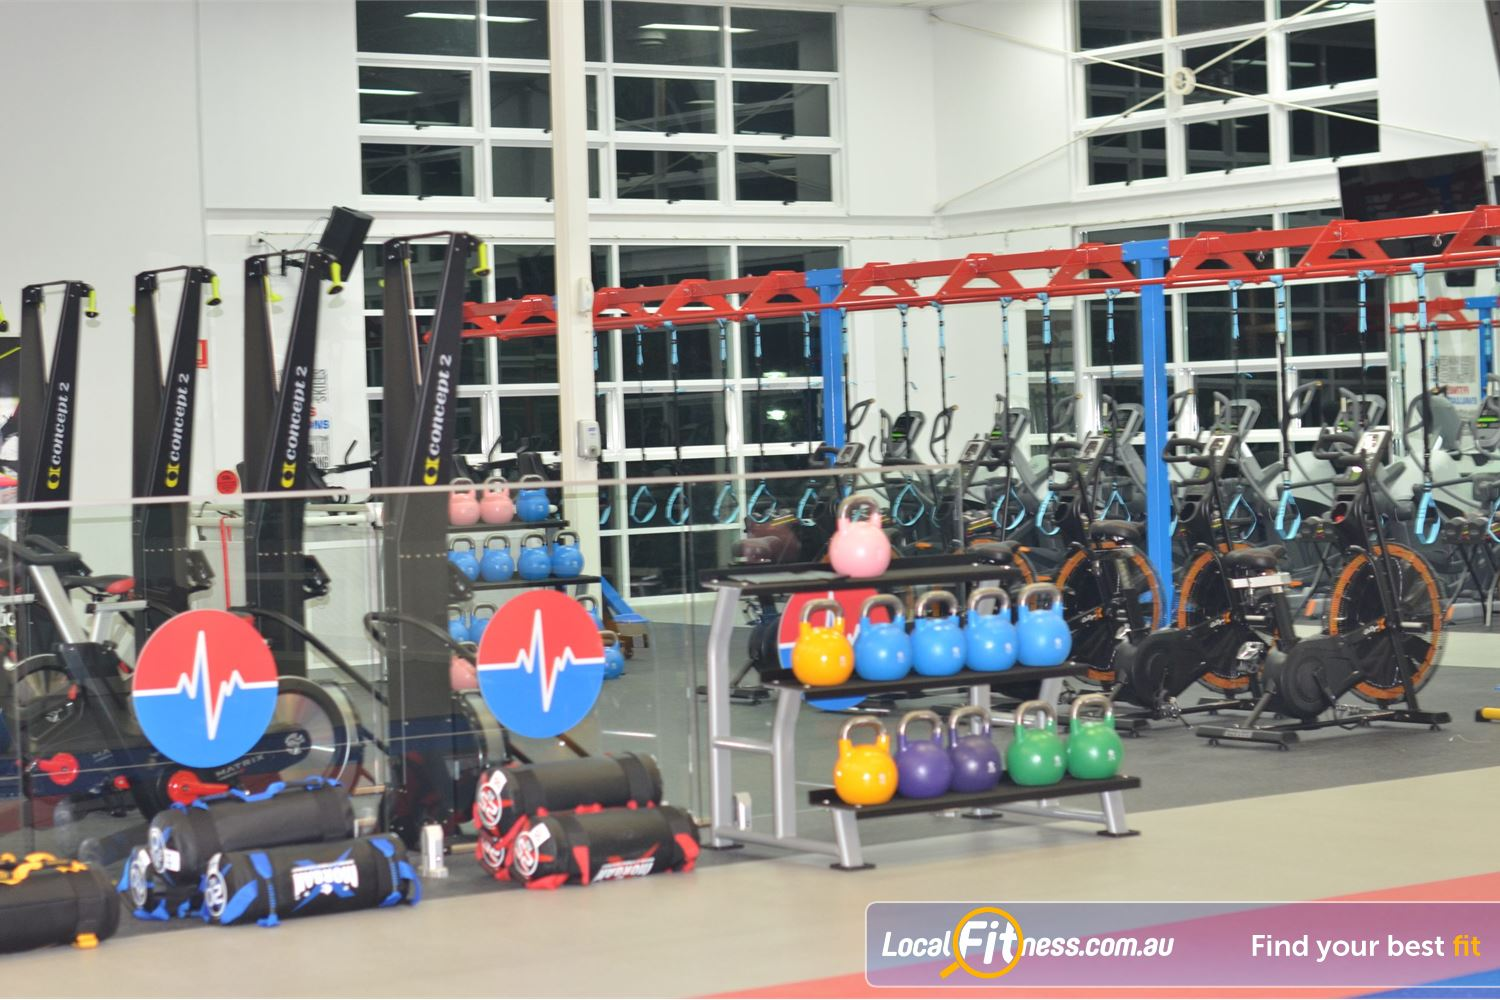 North Ryde Fitness & Aquatic North Ryde Our functional training area is fully equipped for HIIT workouts.